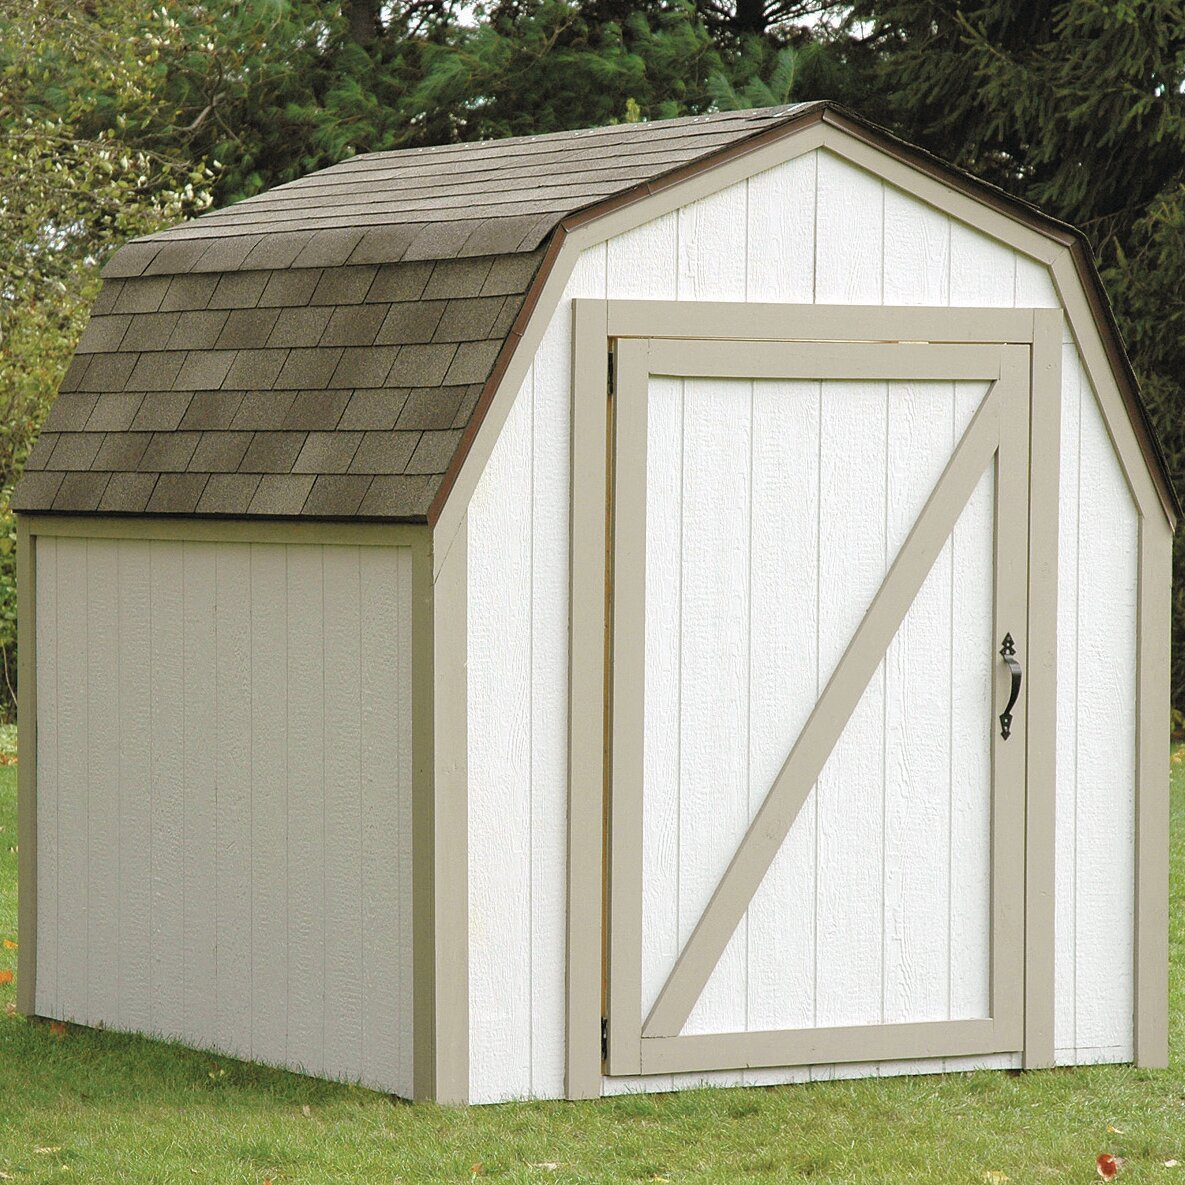 2x4 Basics Barn Roof Shed Kit Reviews Wayfair Supply